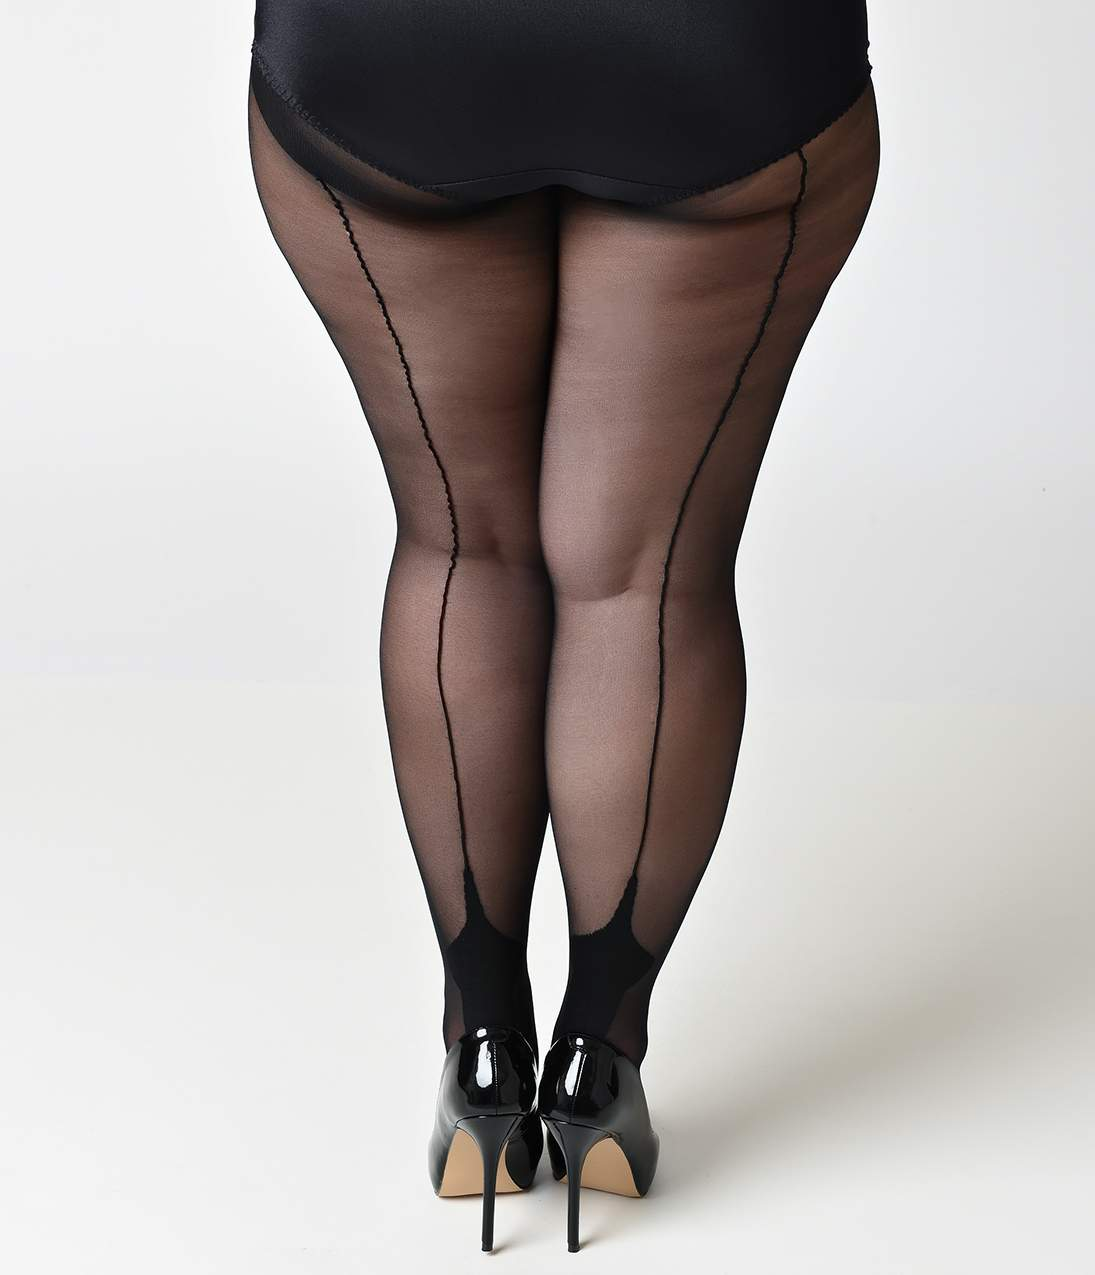 1940s Stockings: Hosiery, Nylons, and Socks History Plus Size Black Cuban Heel Stockings $12.00 AT vintagedancer.com